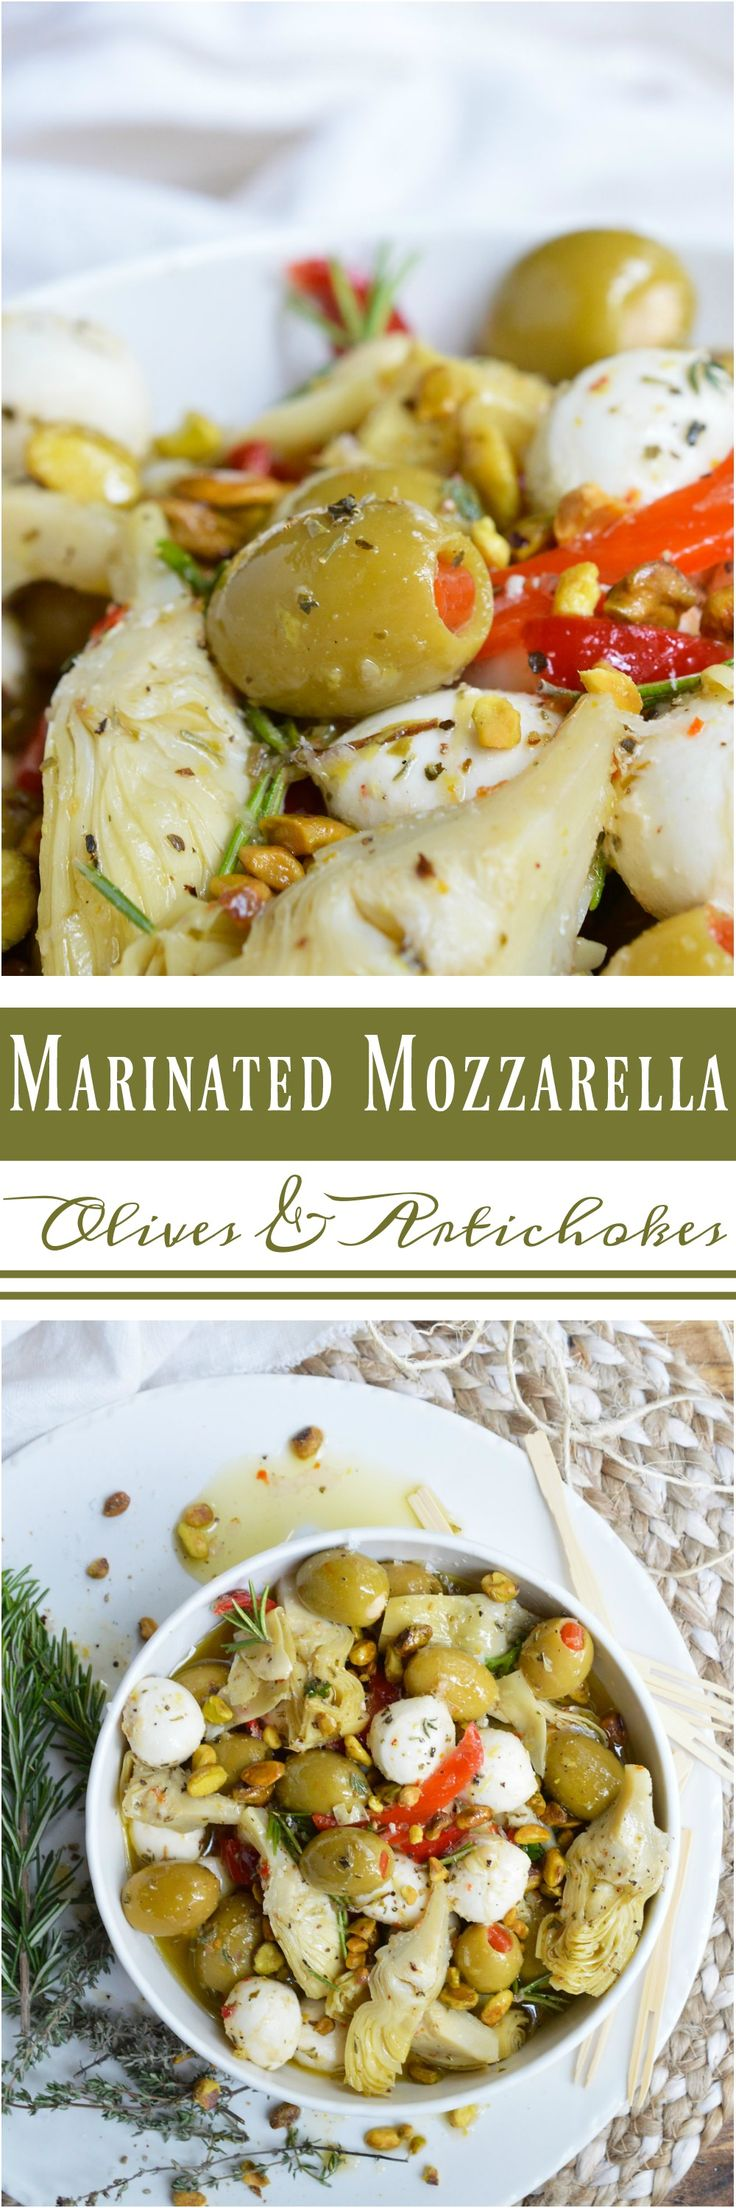 For a quick and easy appetizer, make these Marinated Mozzarella Balls, Artichokes and Olives. This appetizer recipe is full of garlic and fresh herb flavor. Perfect for serving at holiday feasts and parties!